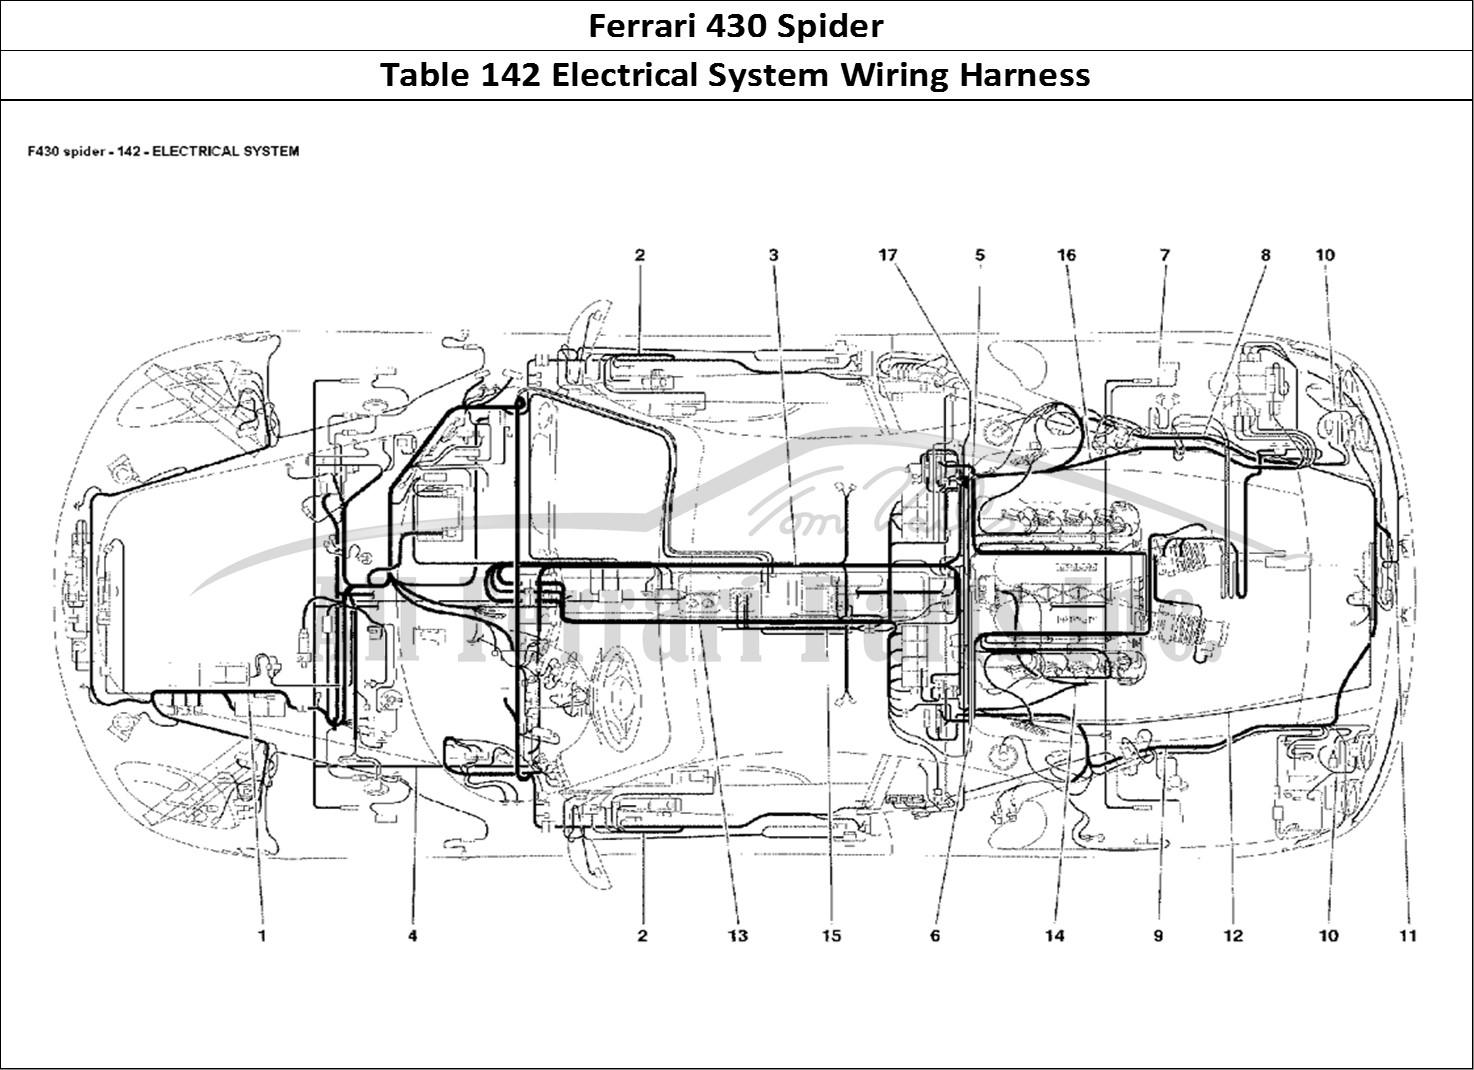 Ferrari 456 Gt Wiring Diagrams Everything About Diagram Library Rh 25 Bloxhuette De Interior 612